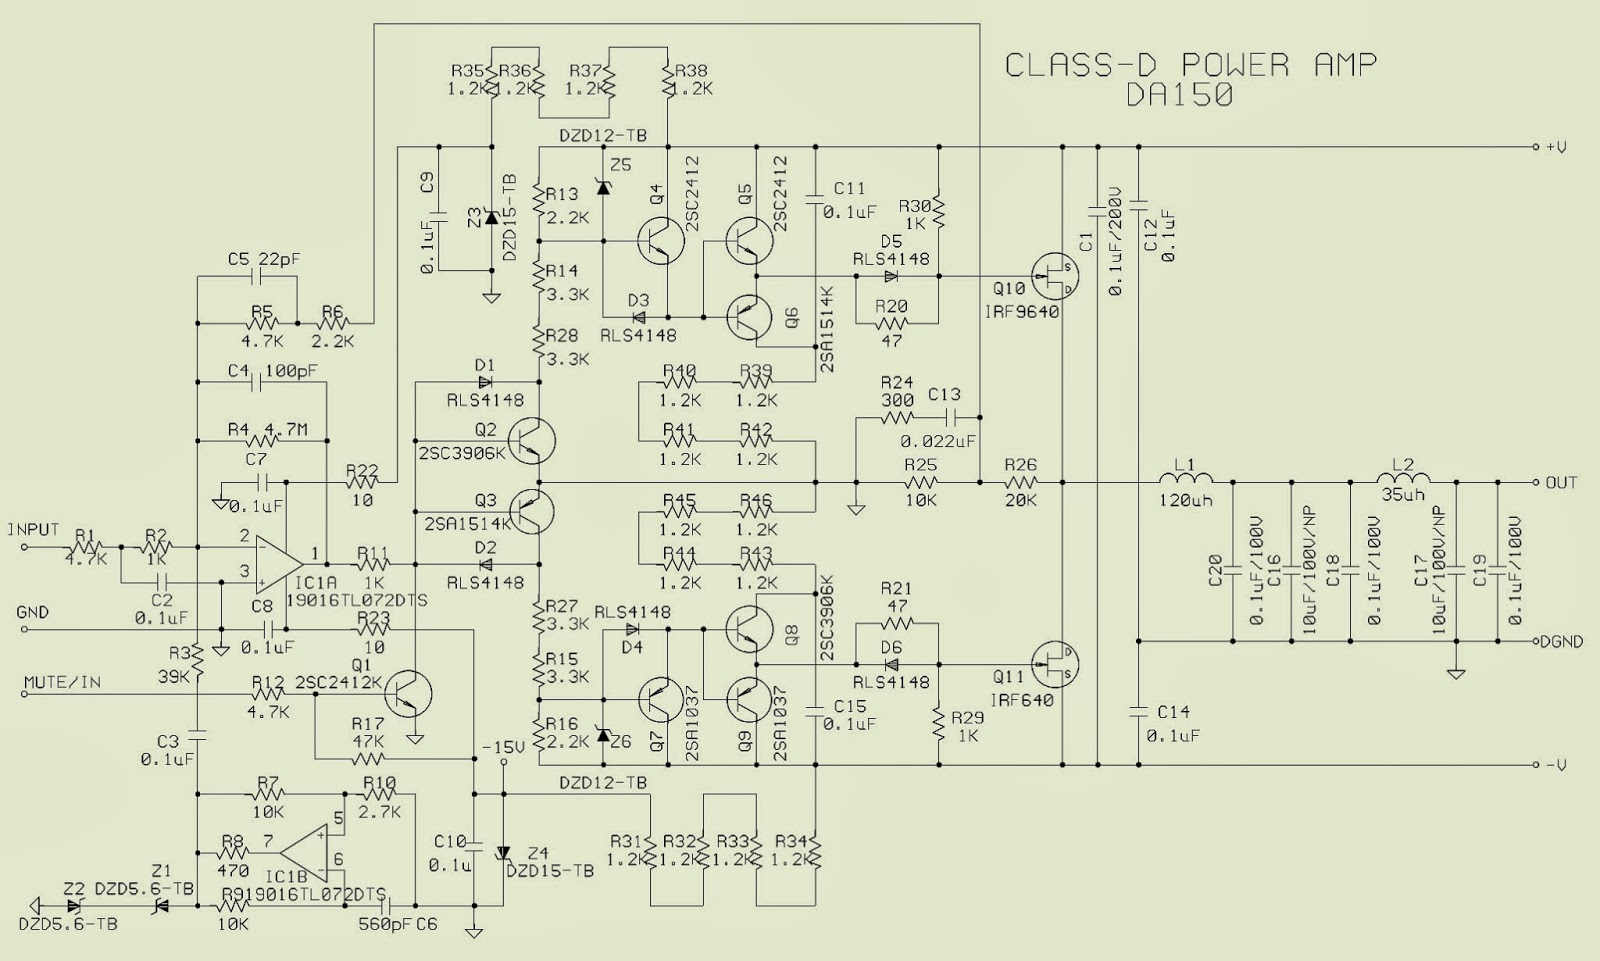 hight resolution of jbl sub 10 sub woofer schematic circuit diagram amp subwoofer jbl powered subwoofer schematic diagram